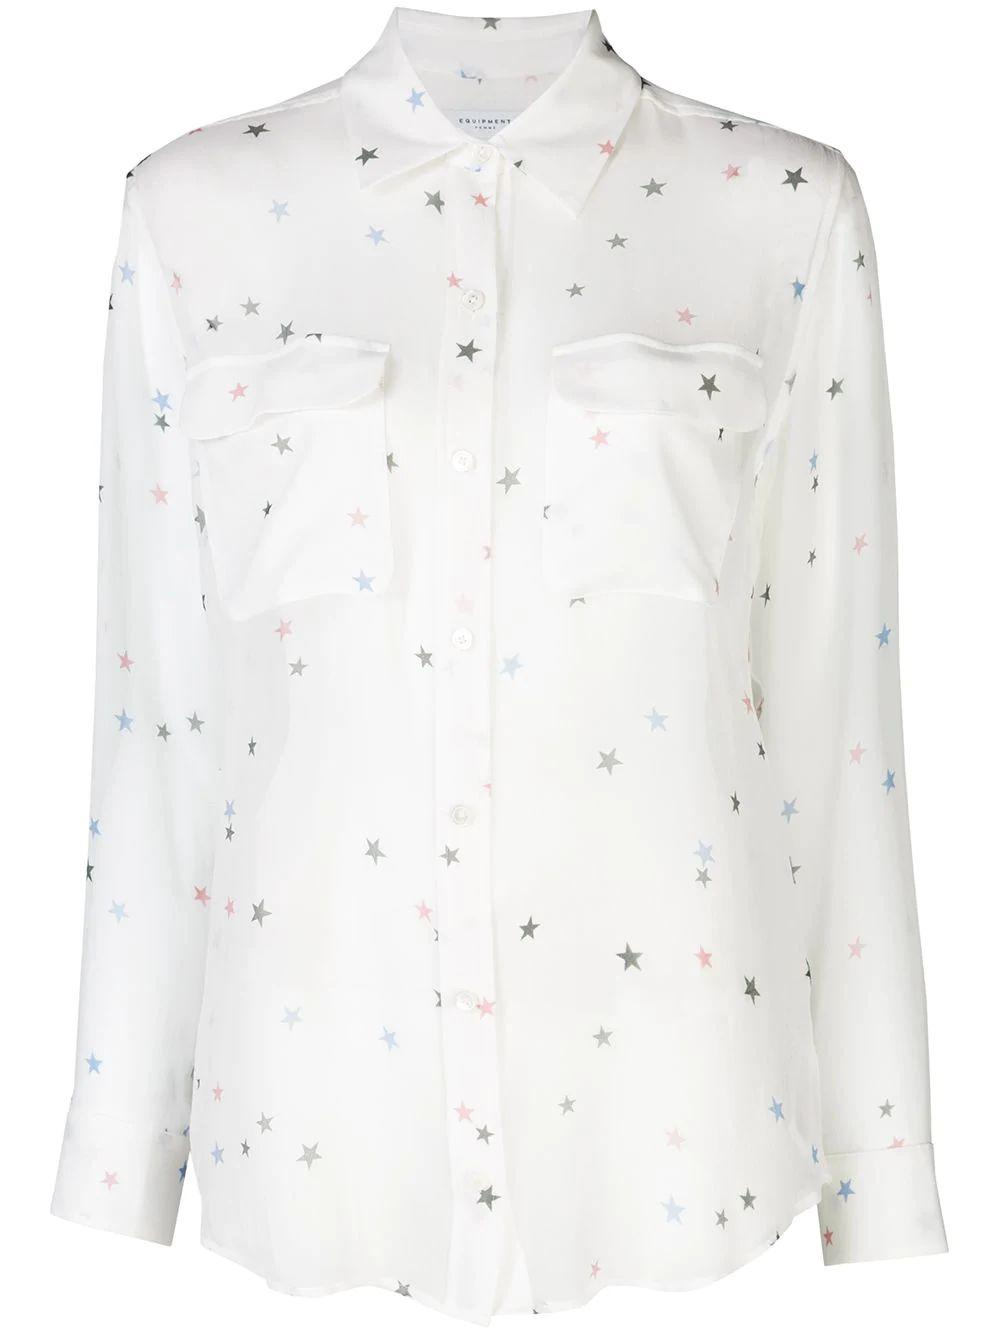 Signature Confetti Sheer Blouse Item # 7464-E035